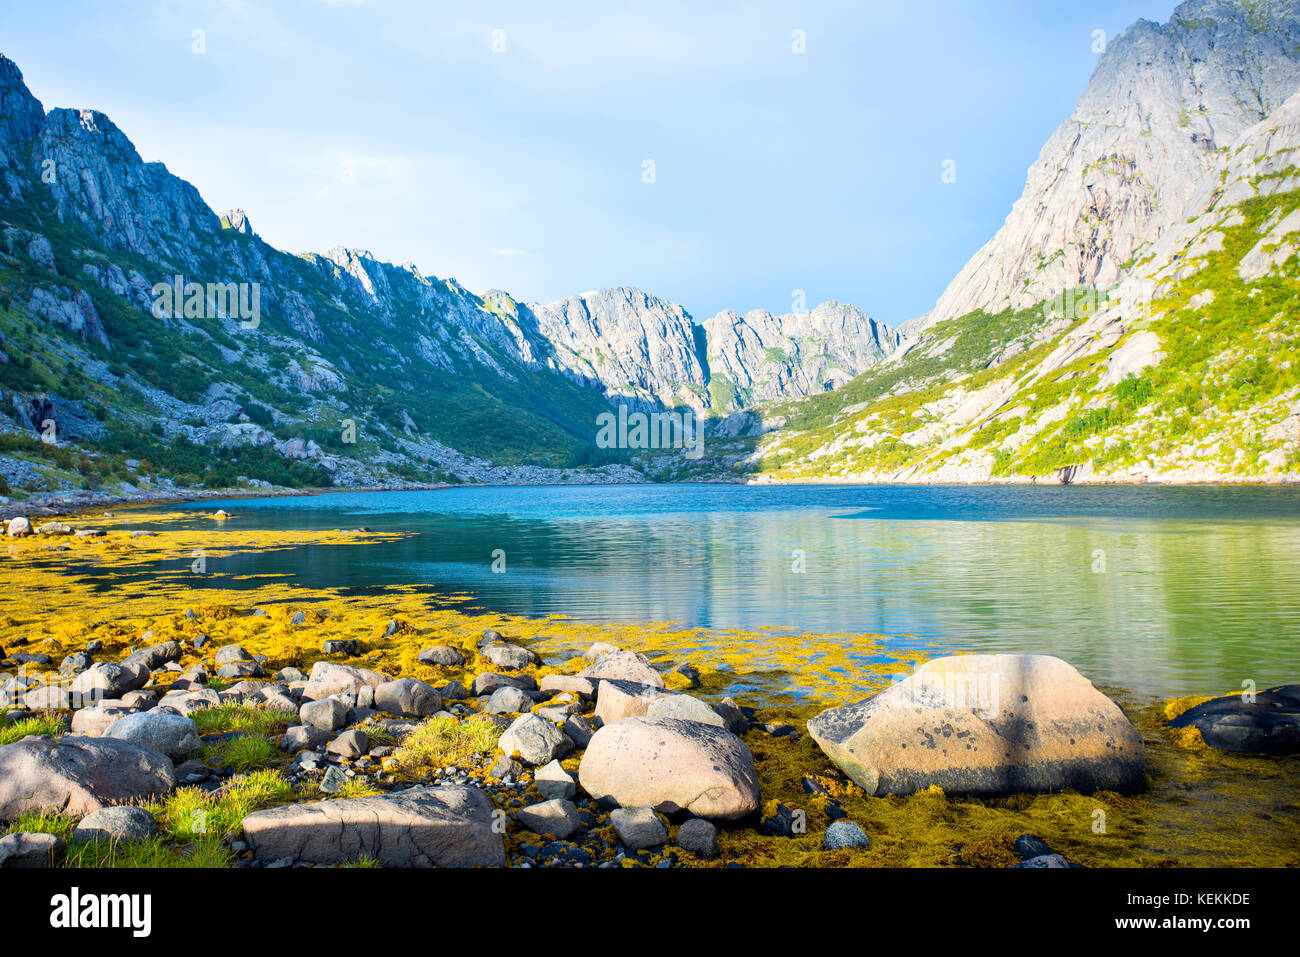 Looking up Djupfjorden near Henningsvaer, Lofoten, Norway. - Stock Image